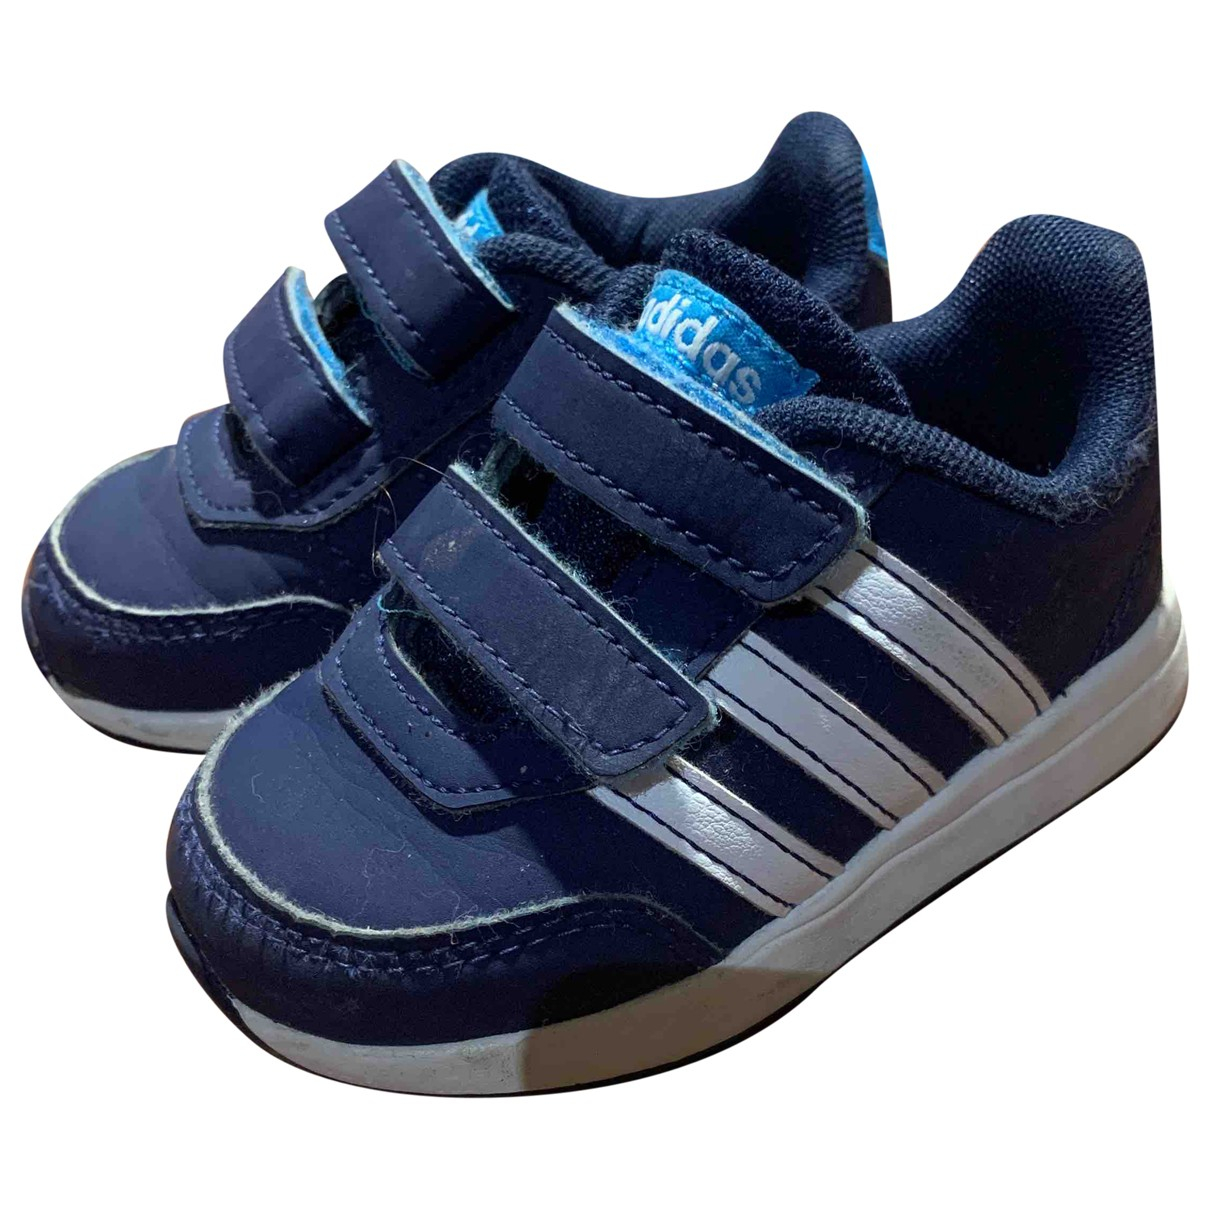 Adidas Superstar Blue Leather Trainers for Kids 20 FR